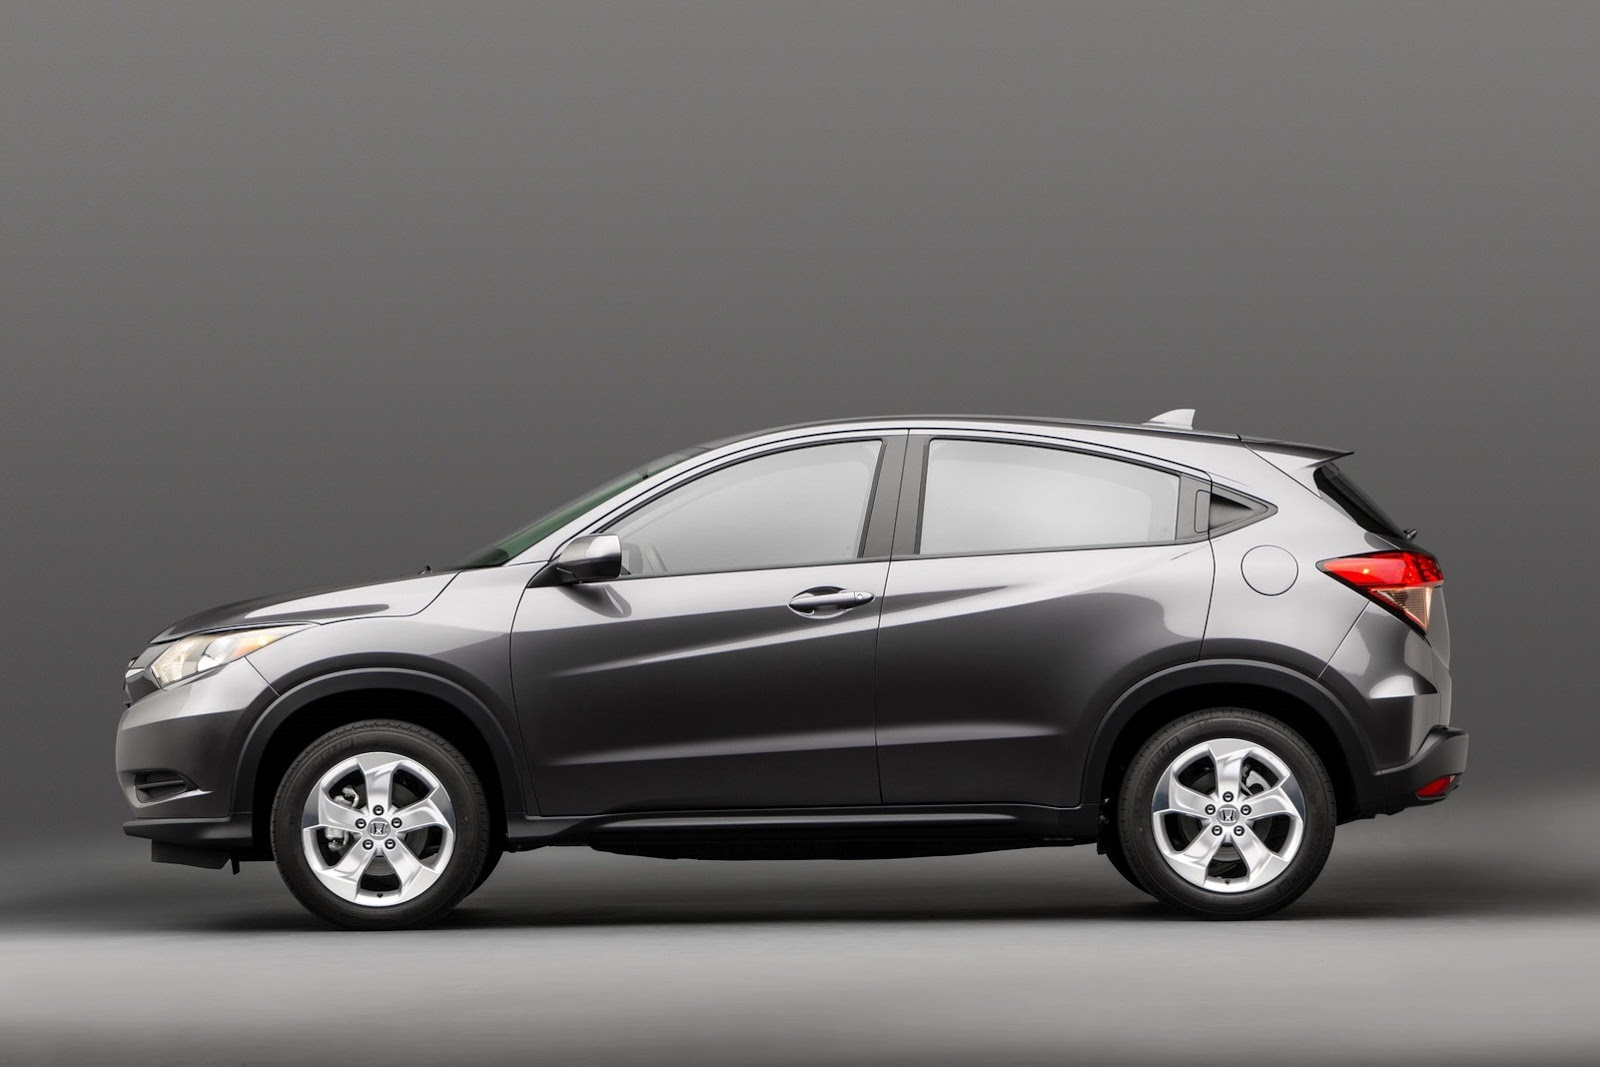 Used Honda Hrv >> All-New 2015 Honda HR-V Will Launch This Winter - autoevolution